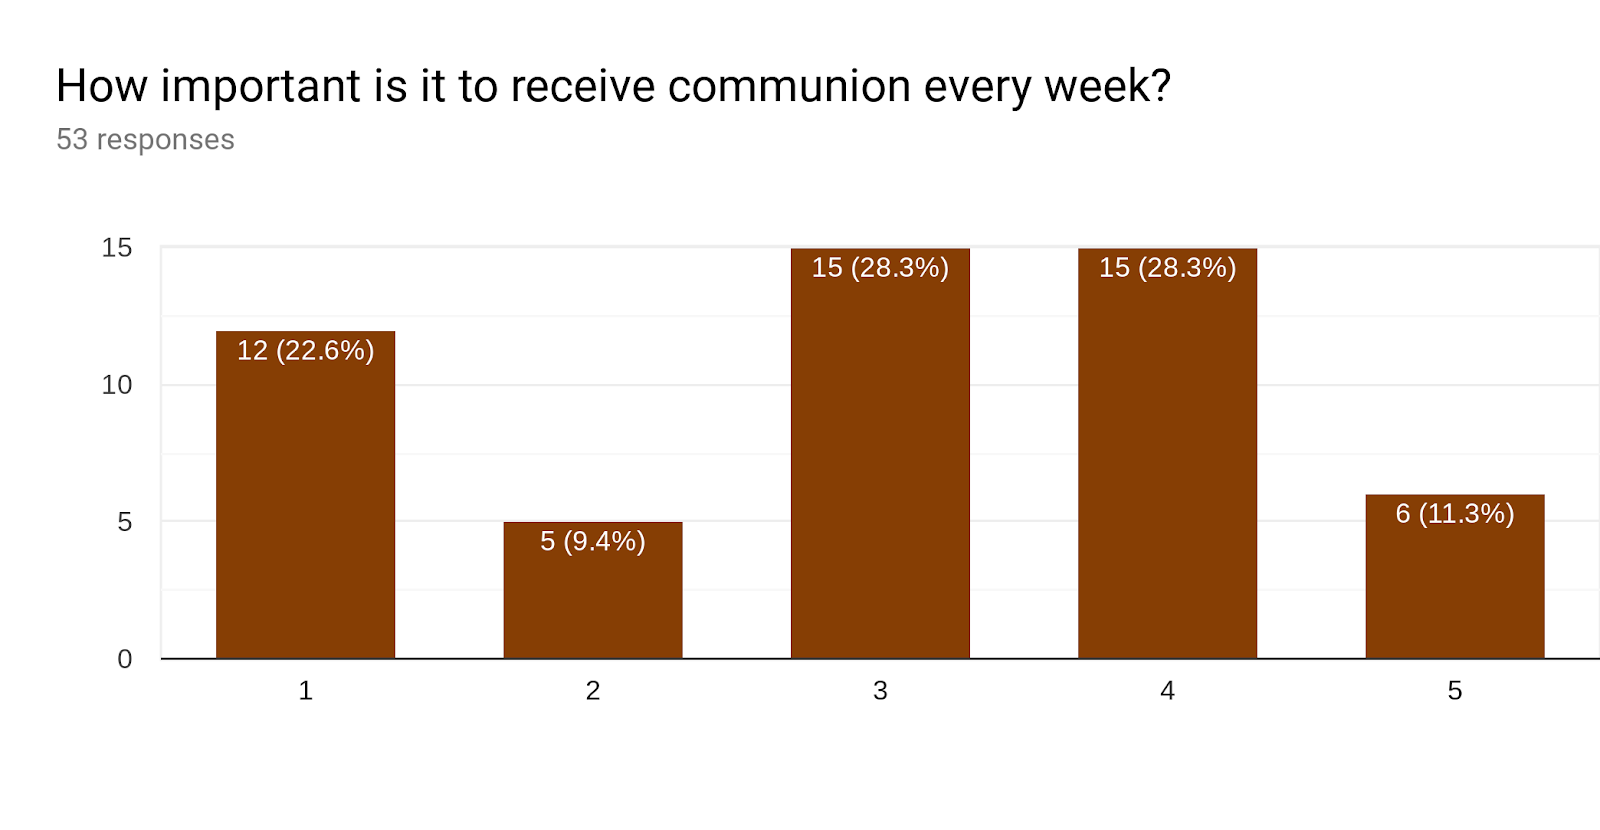 Forms response chart. Question title: How important is it to receive communion every week?. Number of responses: 53 responses.